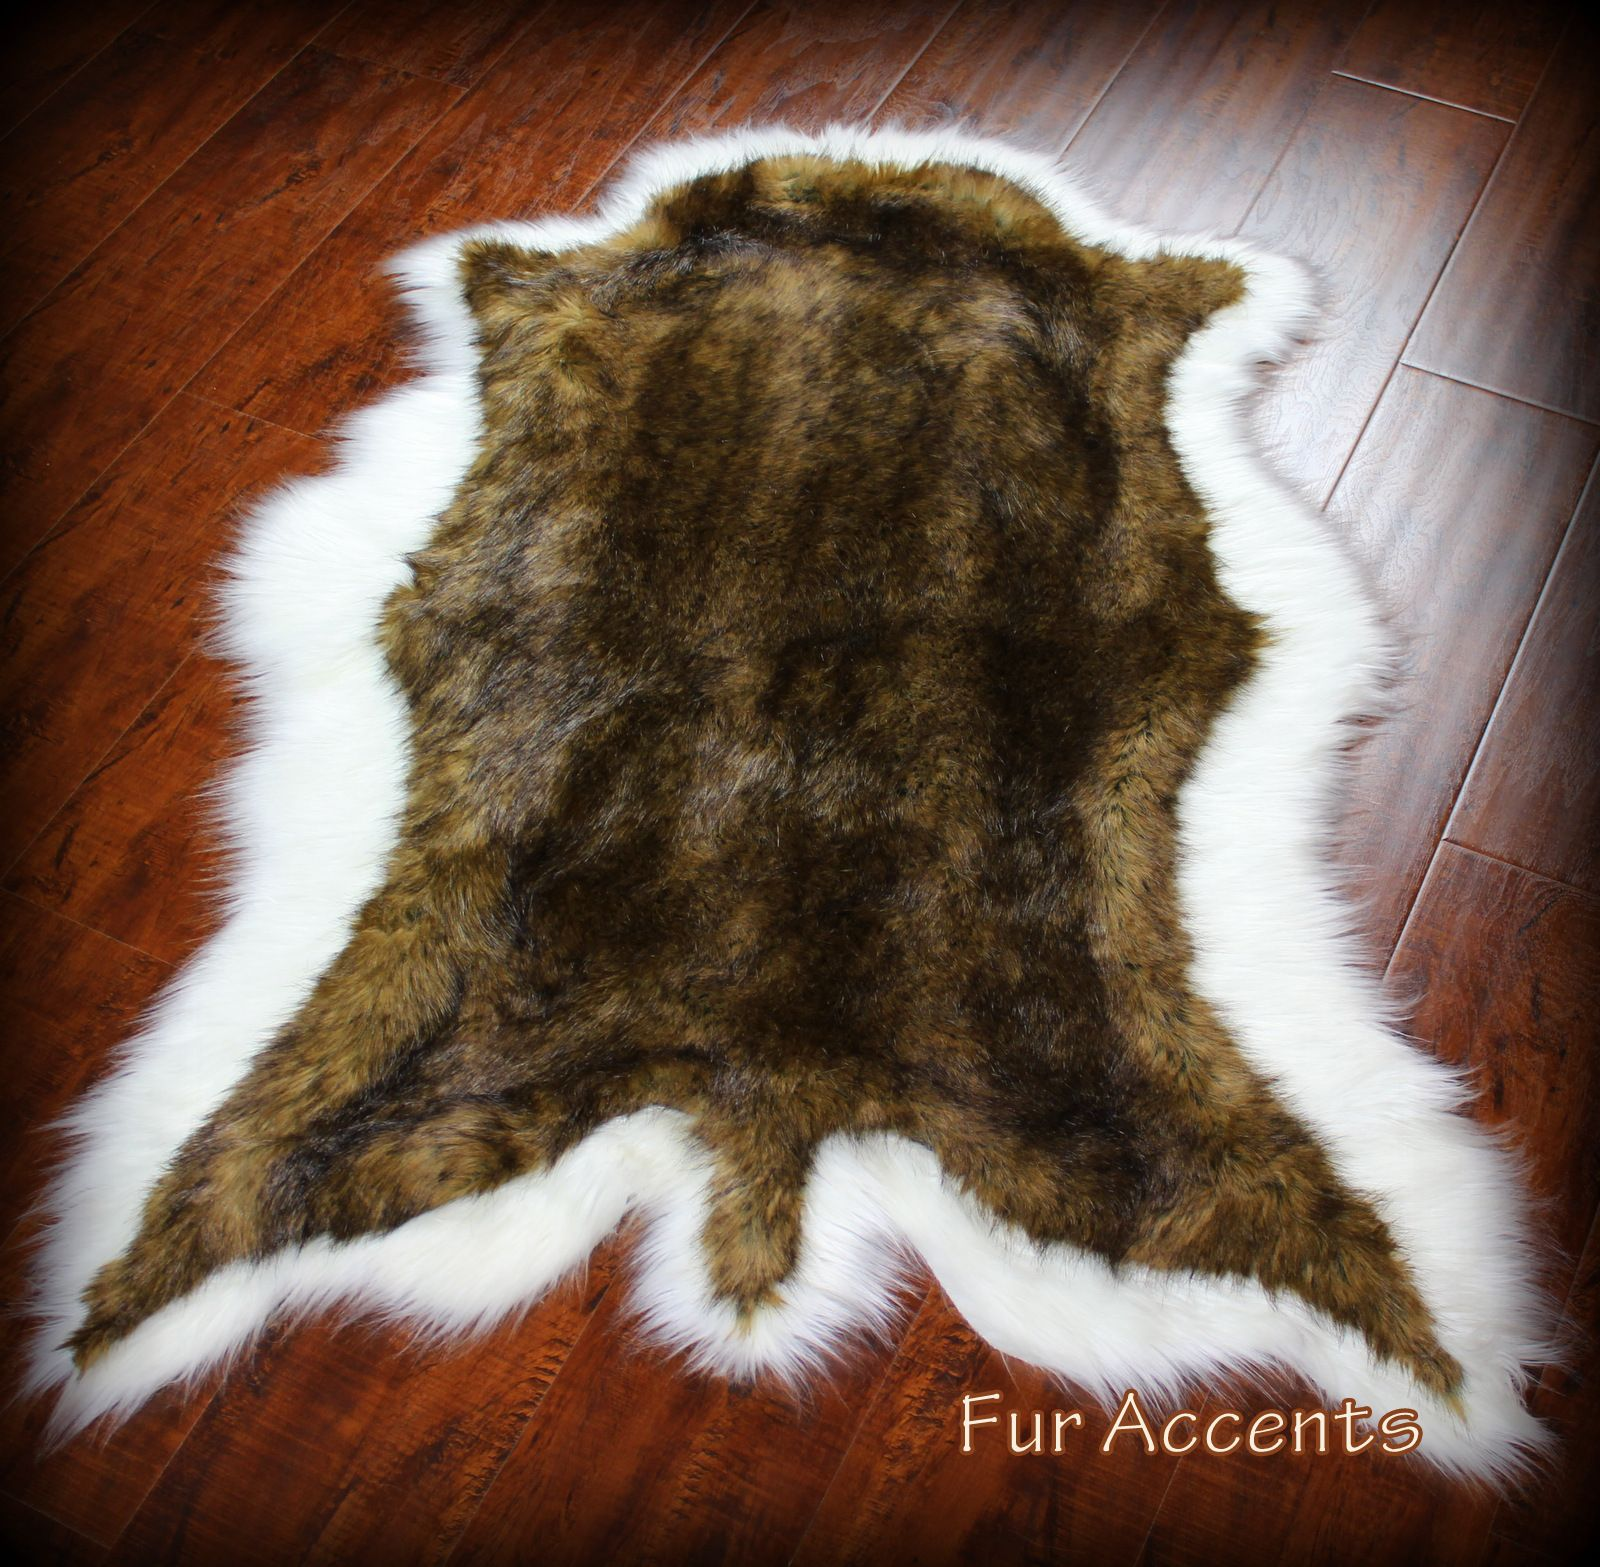 Exotic Bear Skin Rug Deer Hide Thick And Plush Animal Shape Pelt Faux Fur Realistic Friendly 4 New Sizes 2 Colors